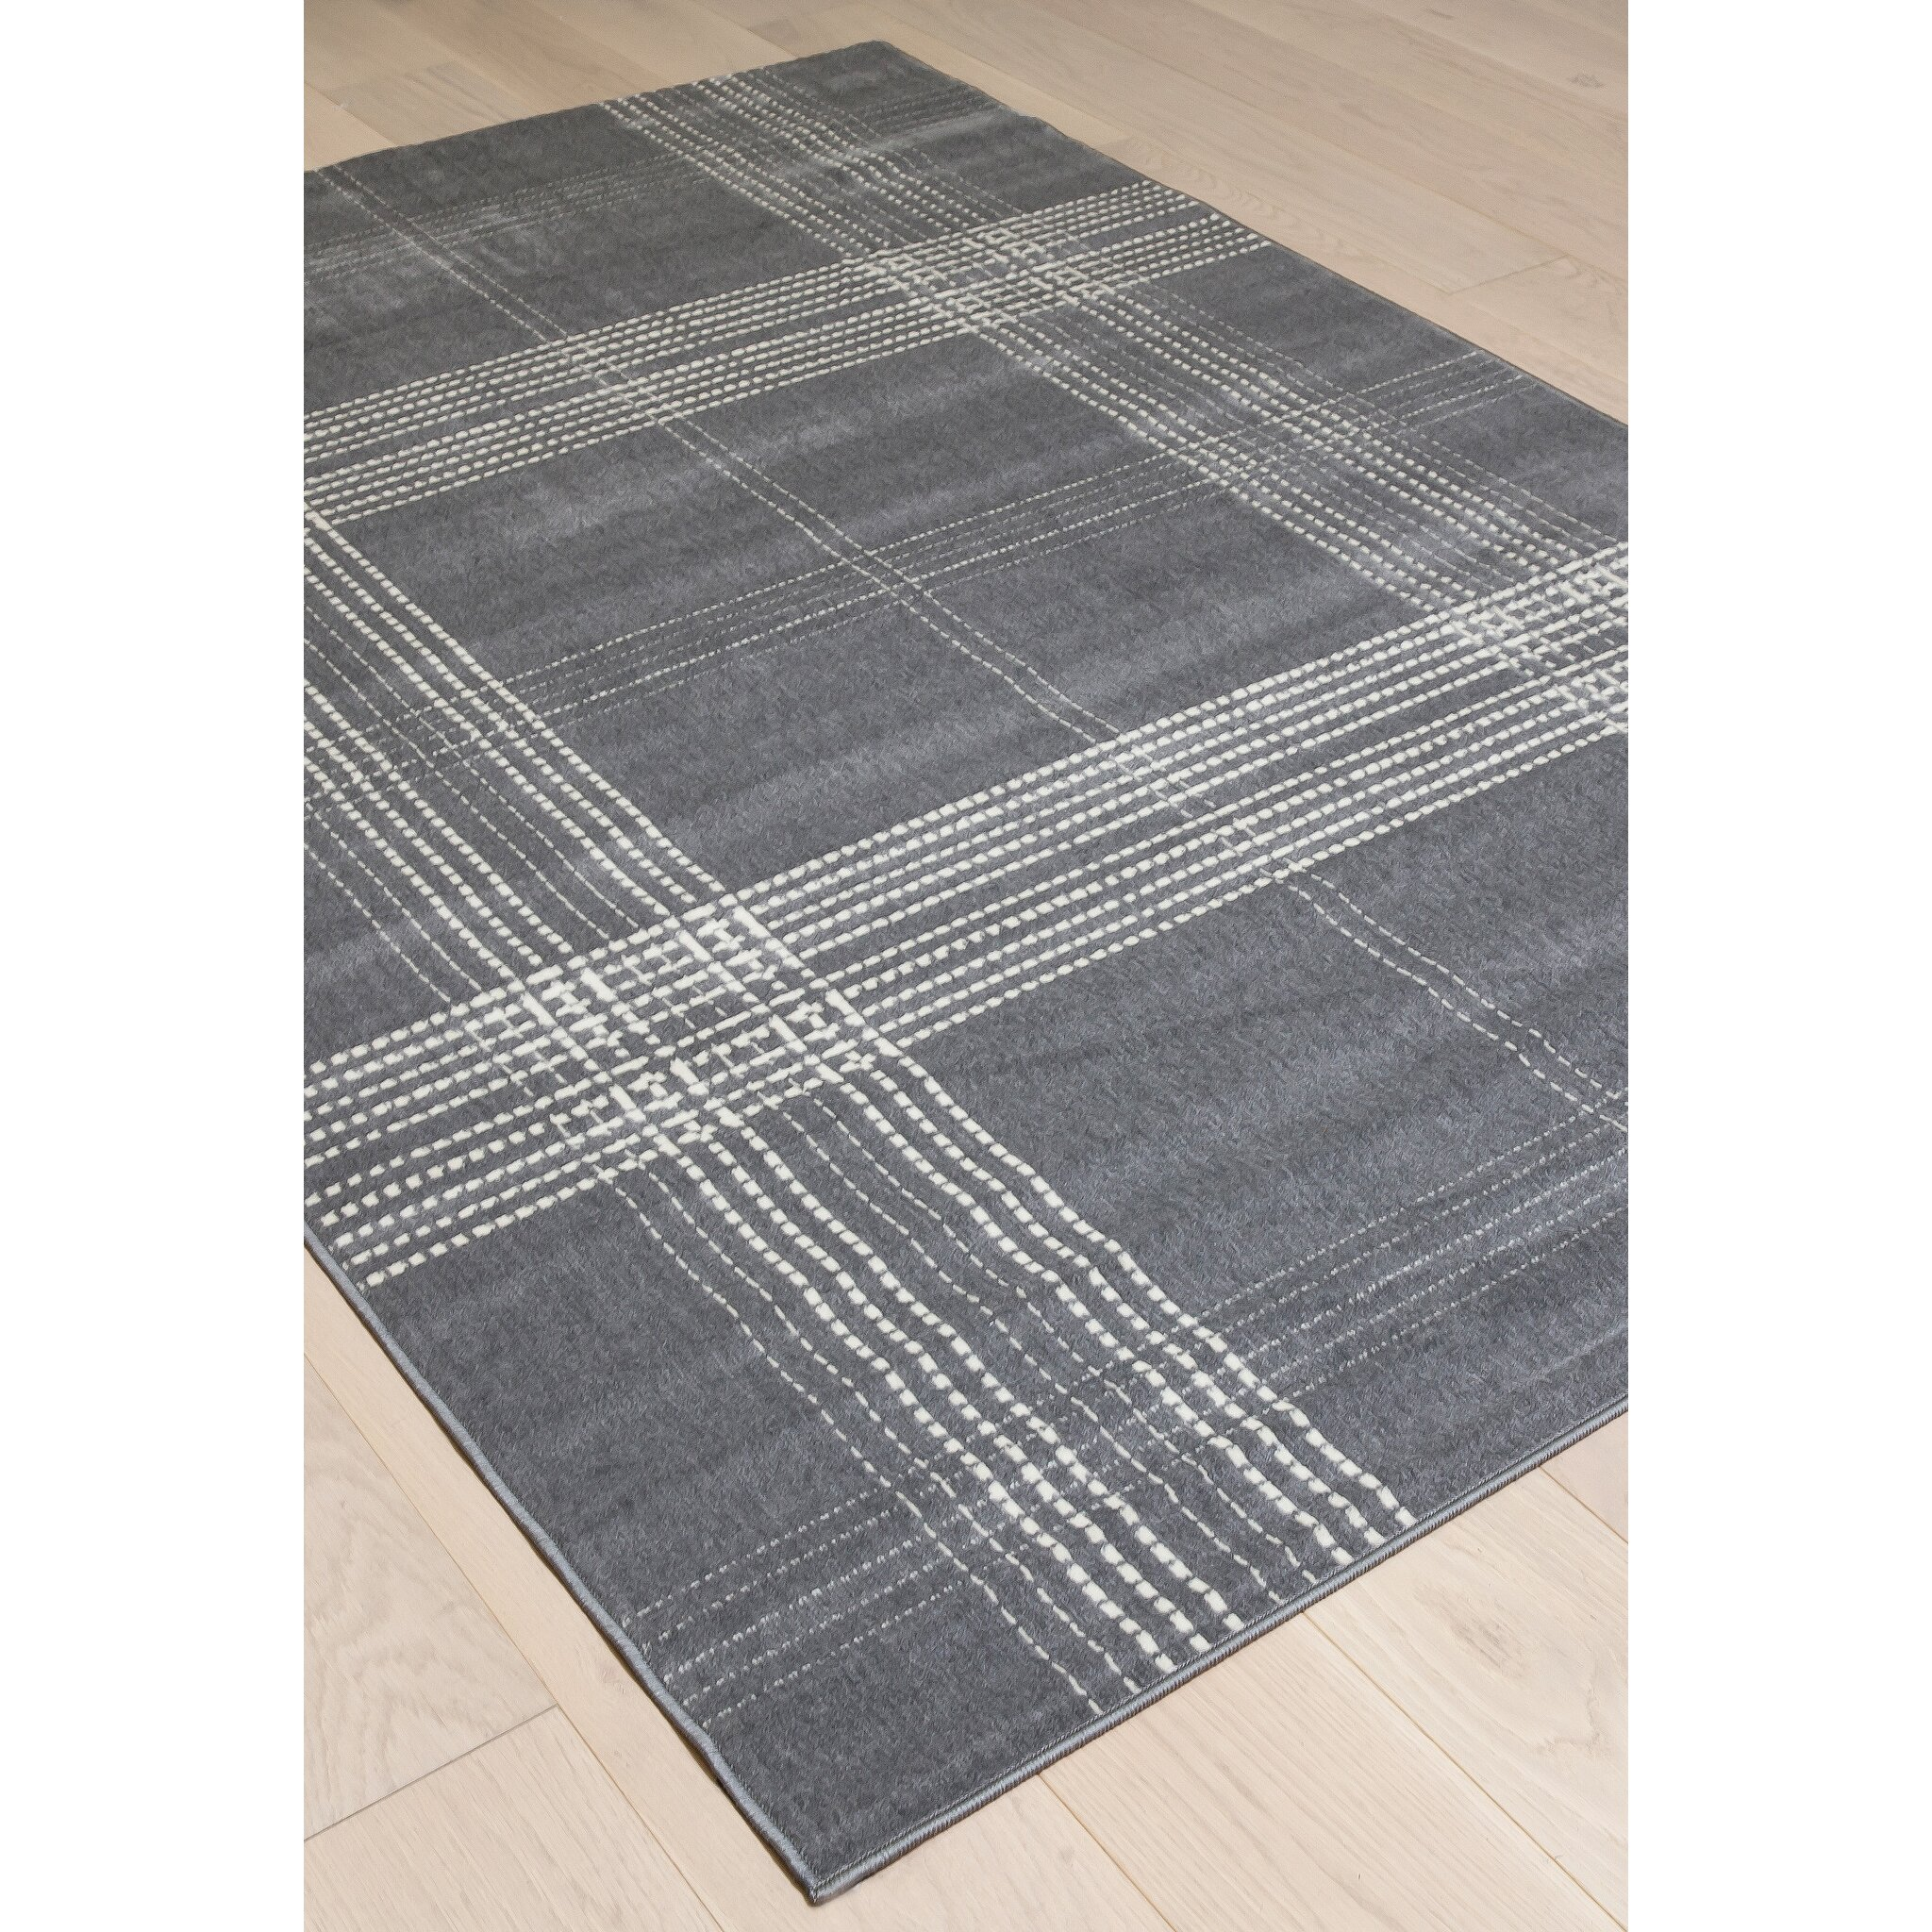 Dining Room Table Size For 8 Abacasa Broadway Plaid Gray Ivory Area Rug Wayfair